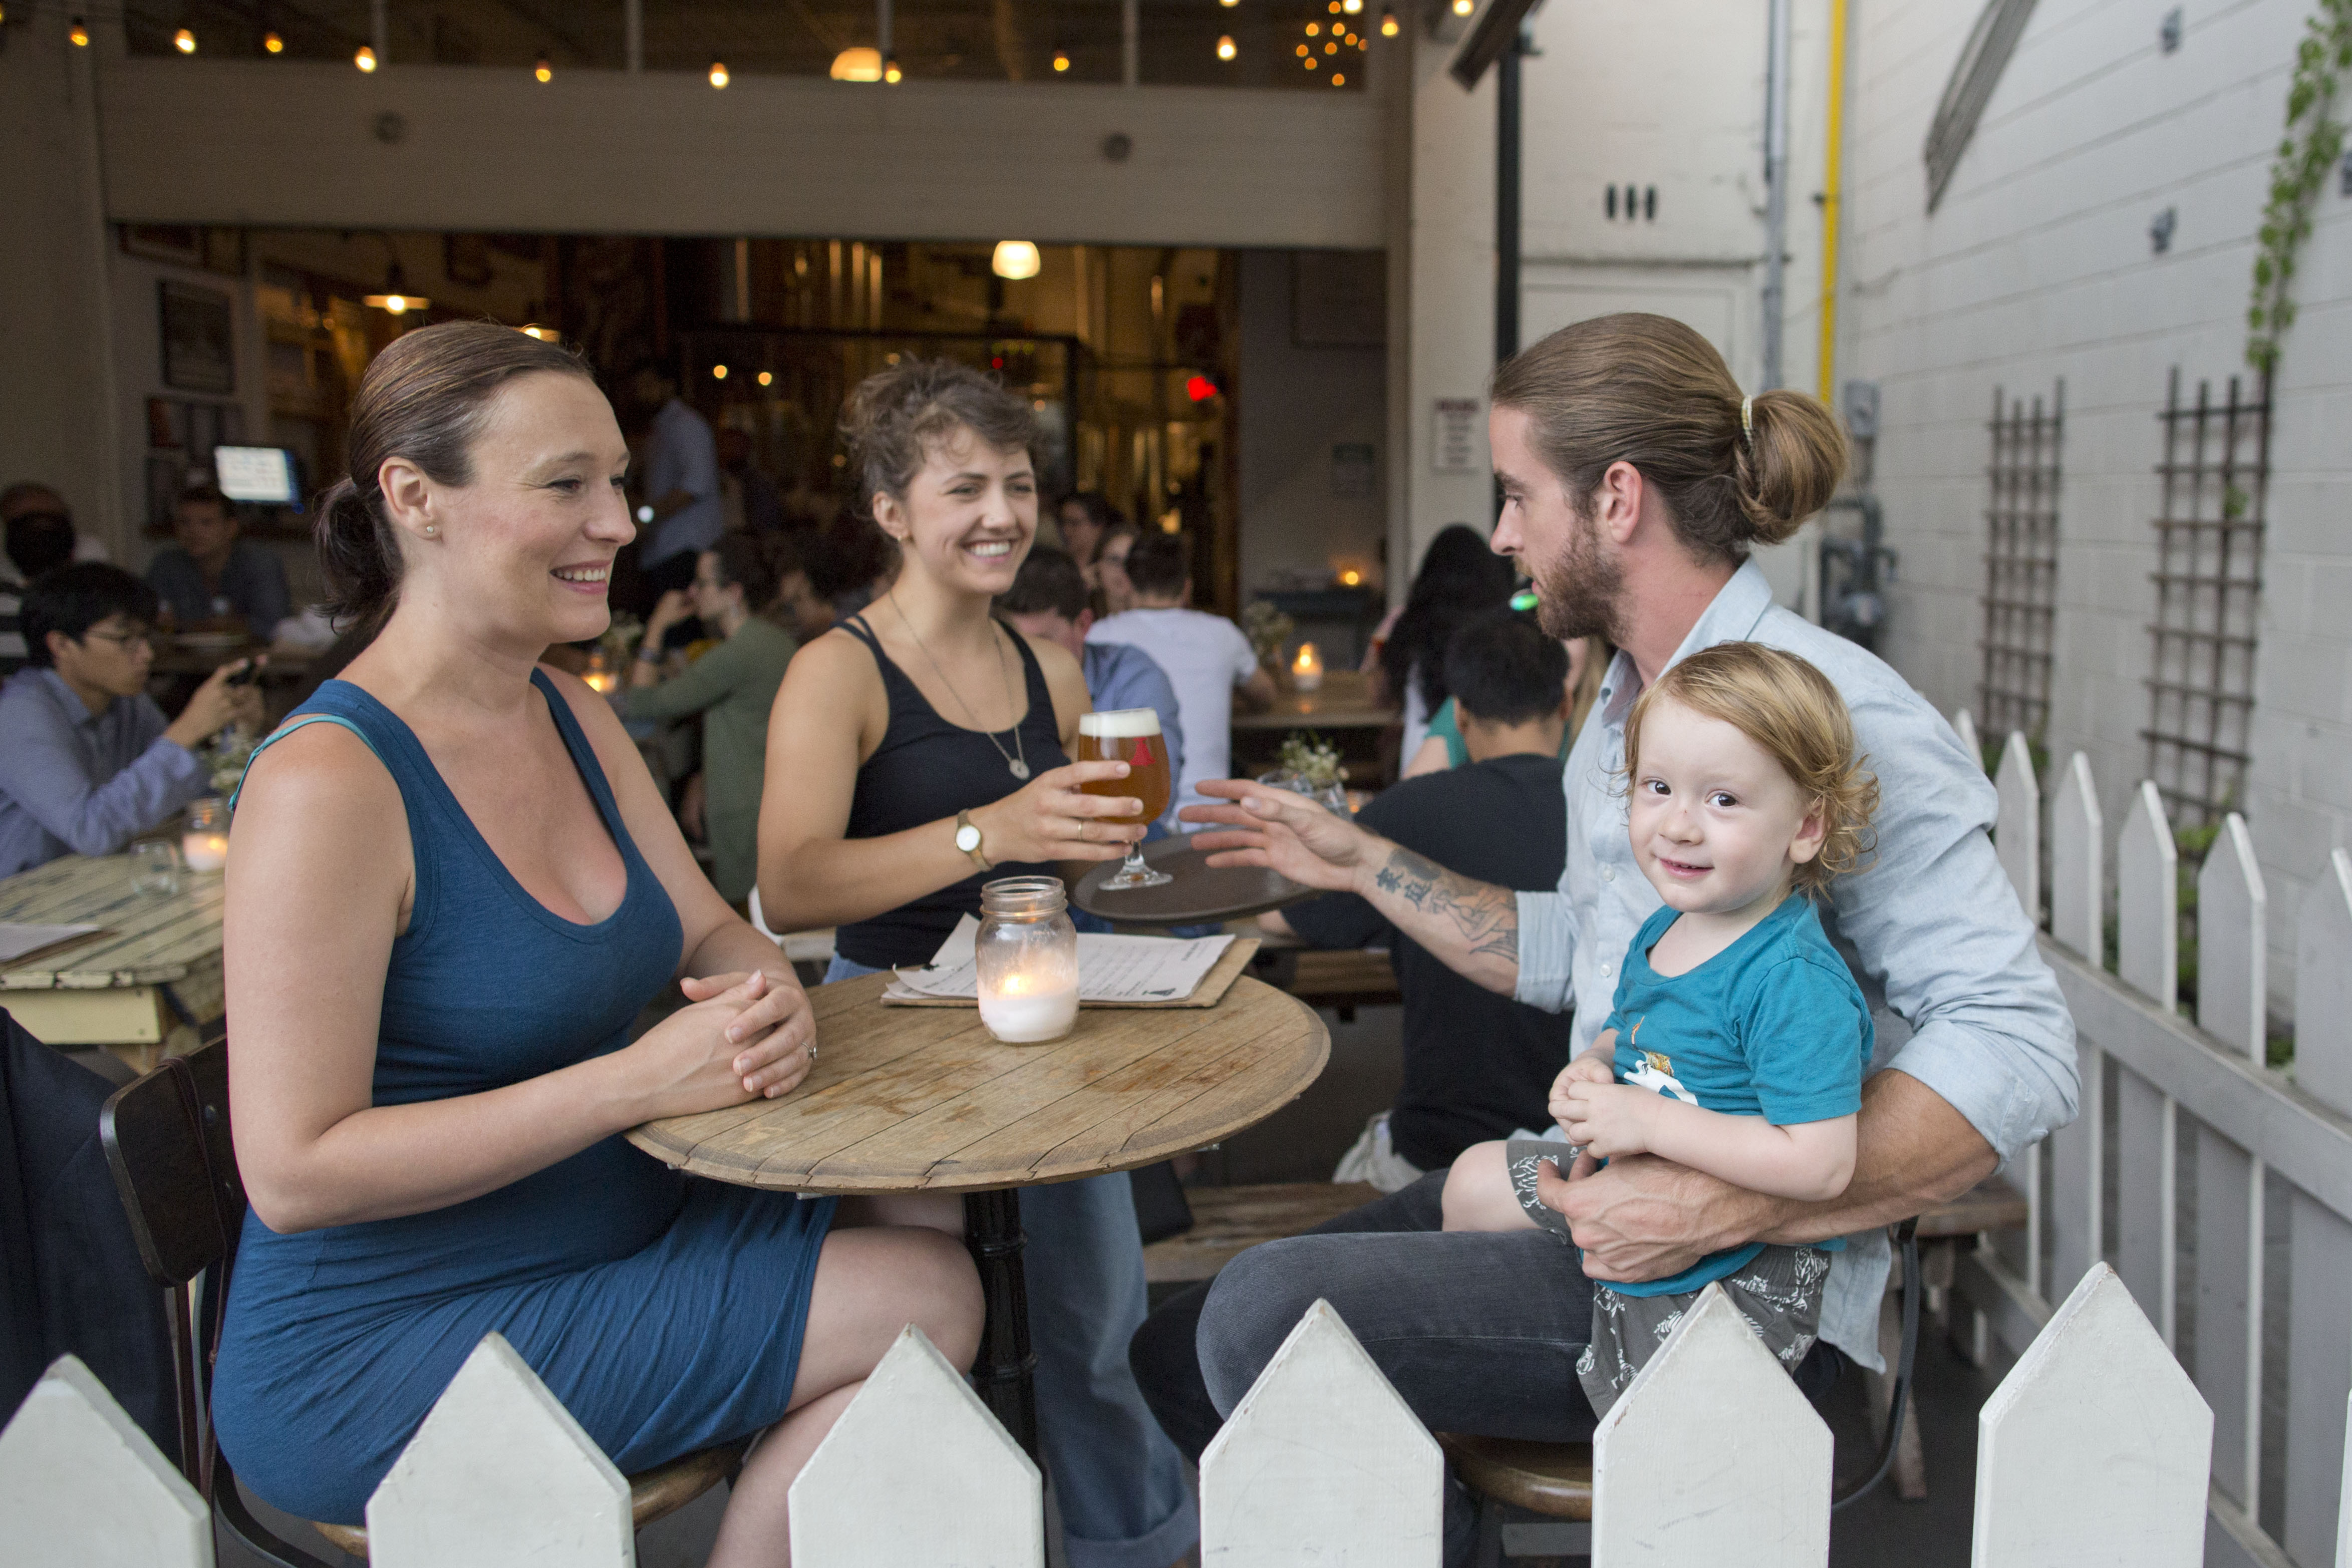 Three white young adults (two women, one man, with a man-bun)sitting at a bar outside, toasting to pints of beer, with a toddler sitting on the man's lap